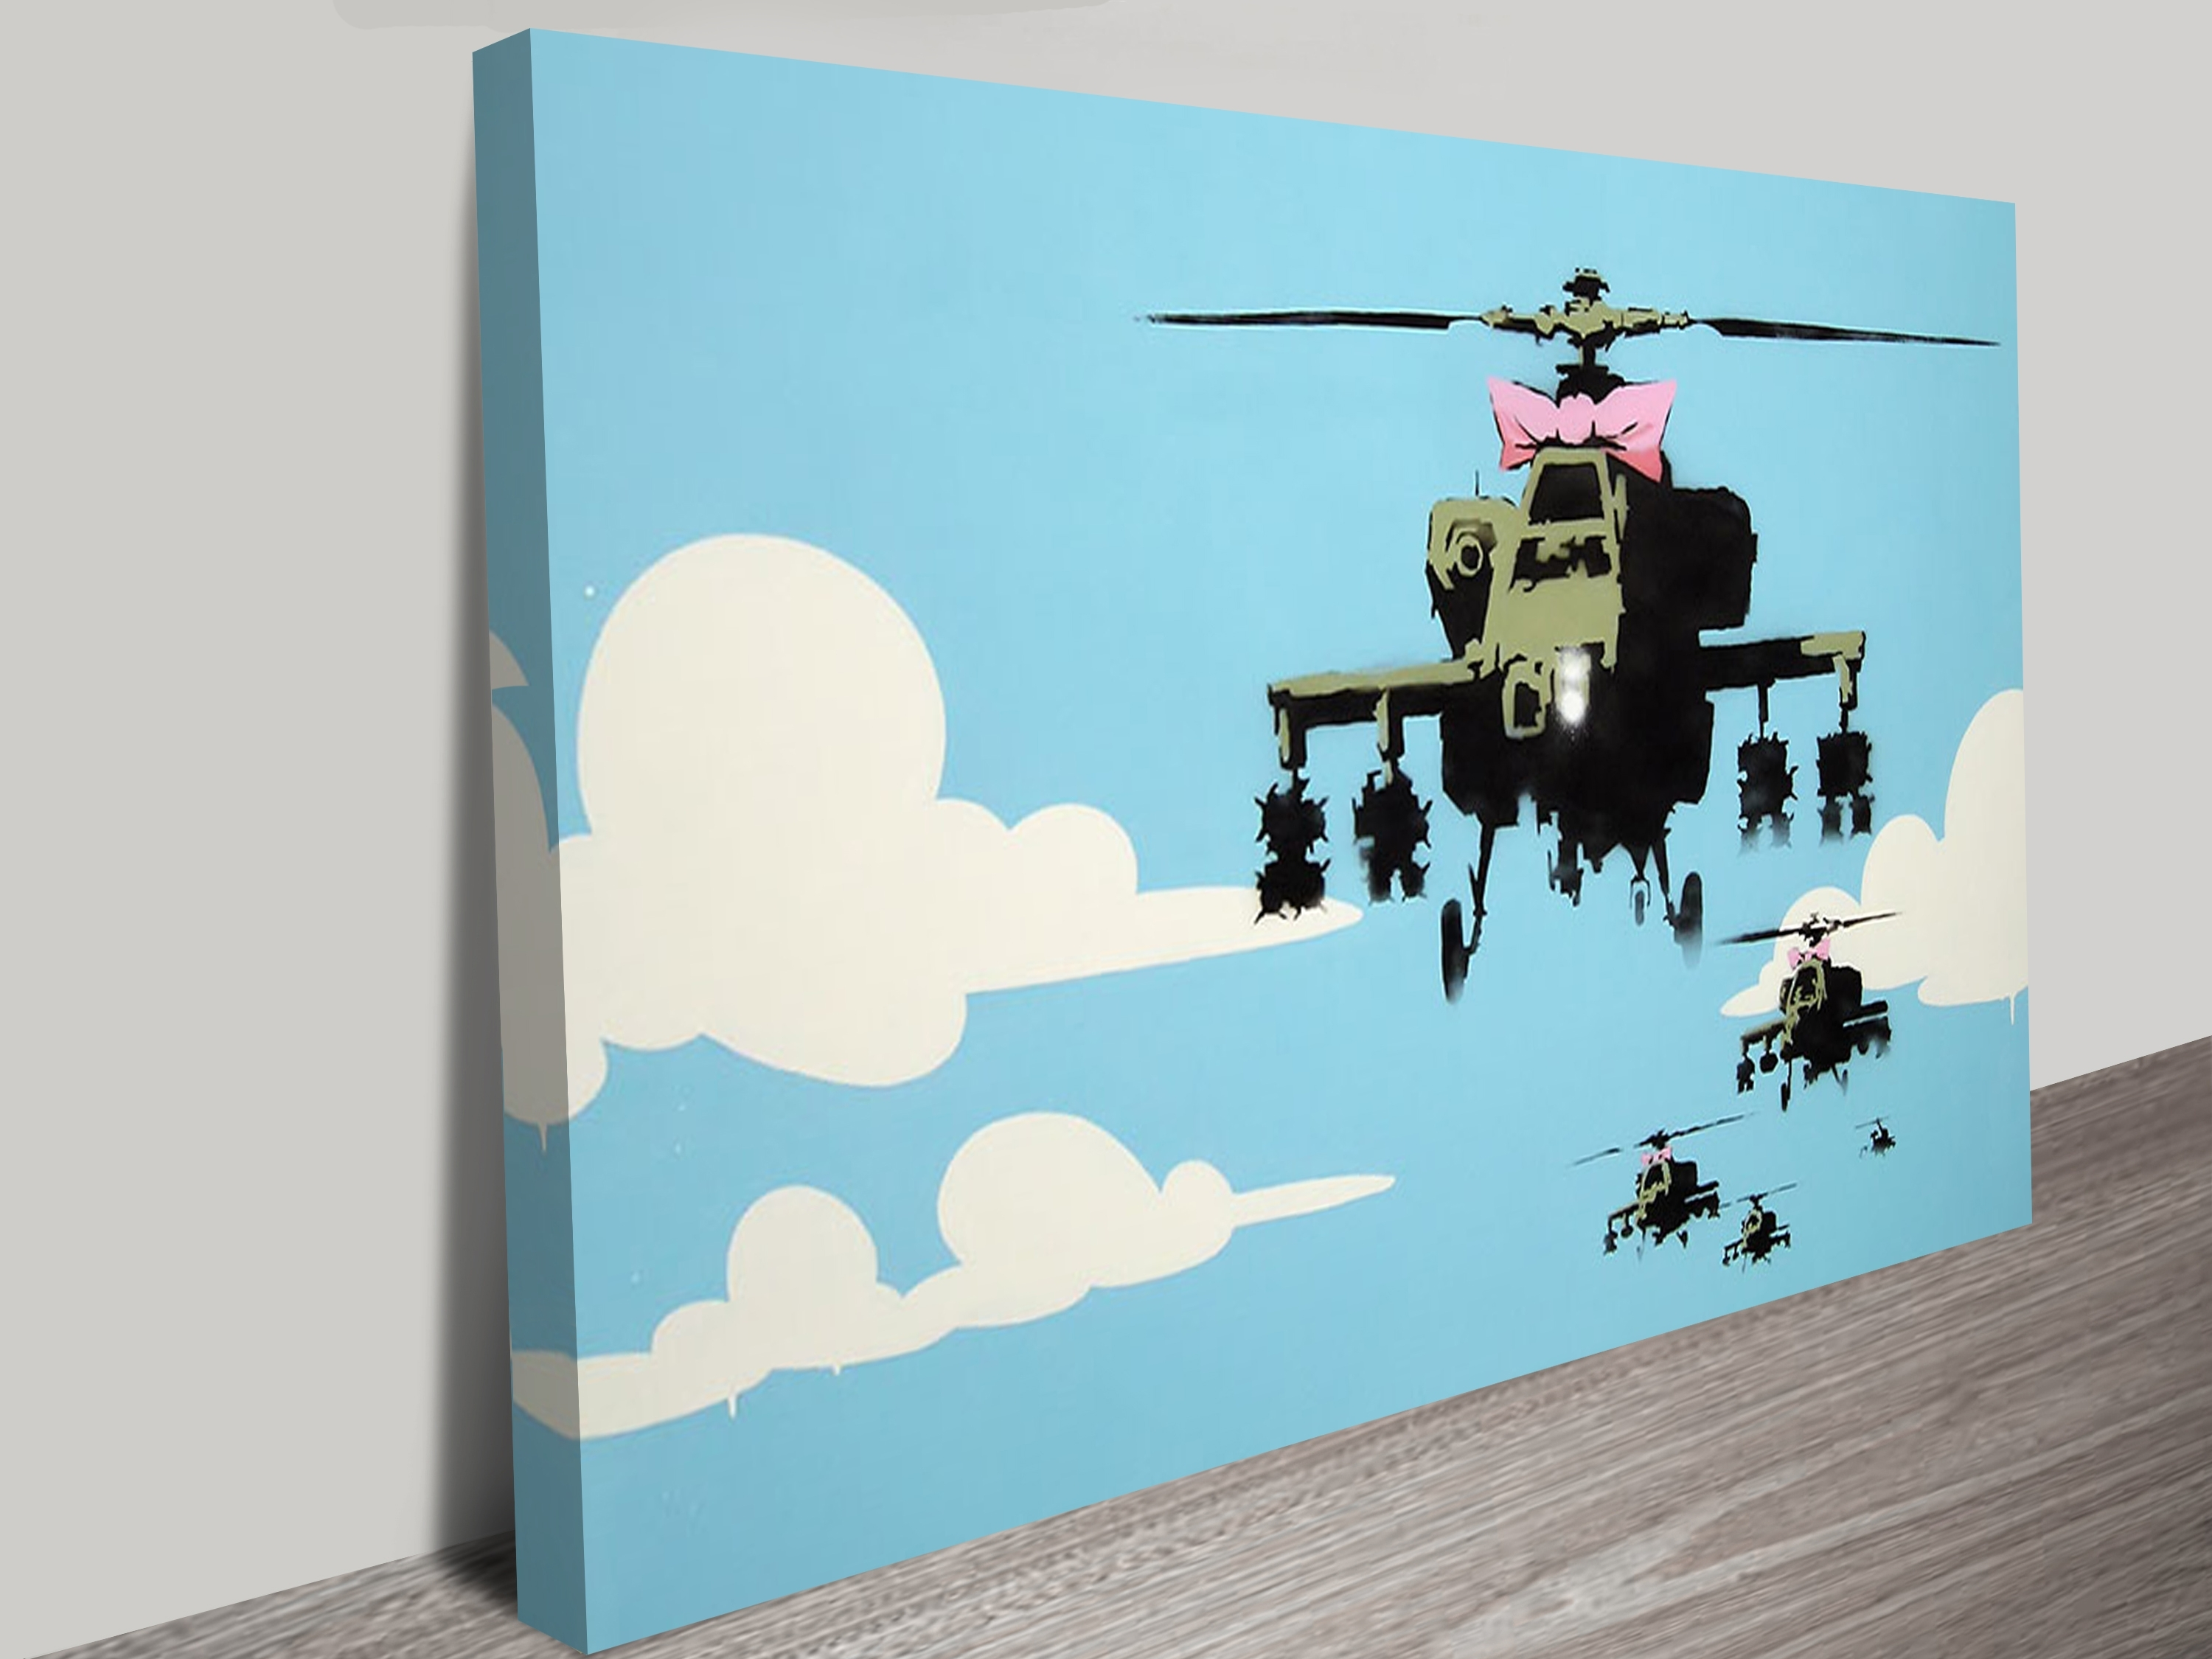 Geelong Canvas Wall Art With Fashionable Happy Copters Banksy Artwork On Canvas Geelong Australia (View 7 of 15)